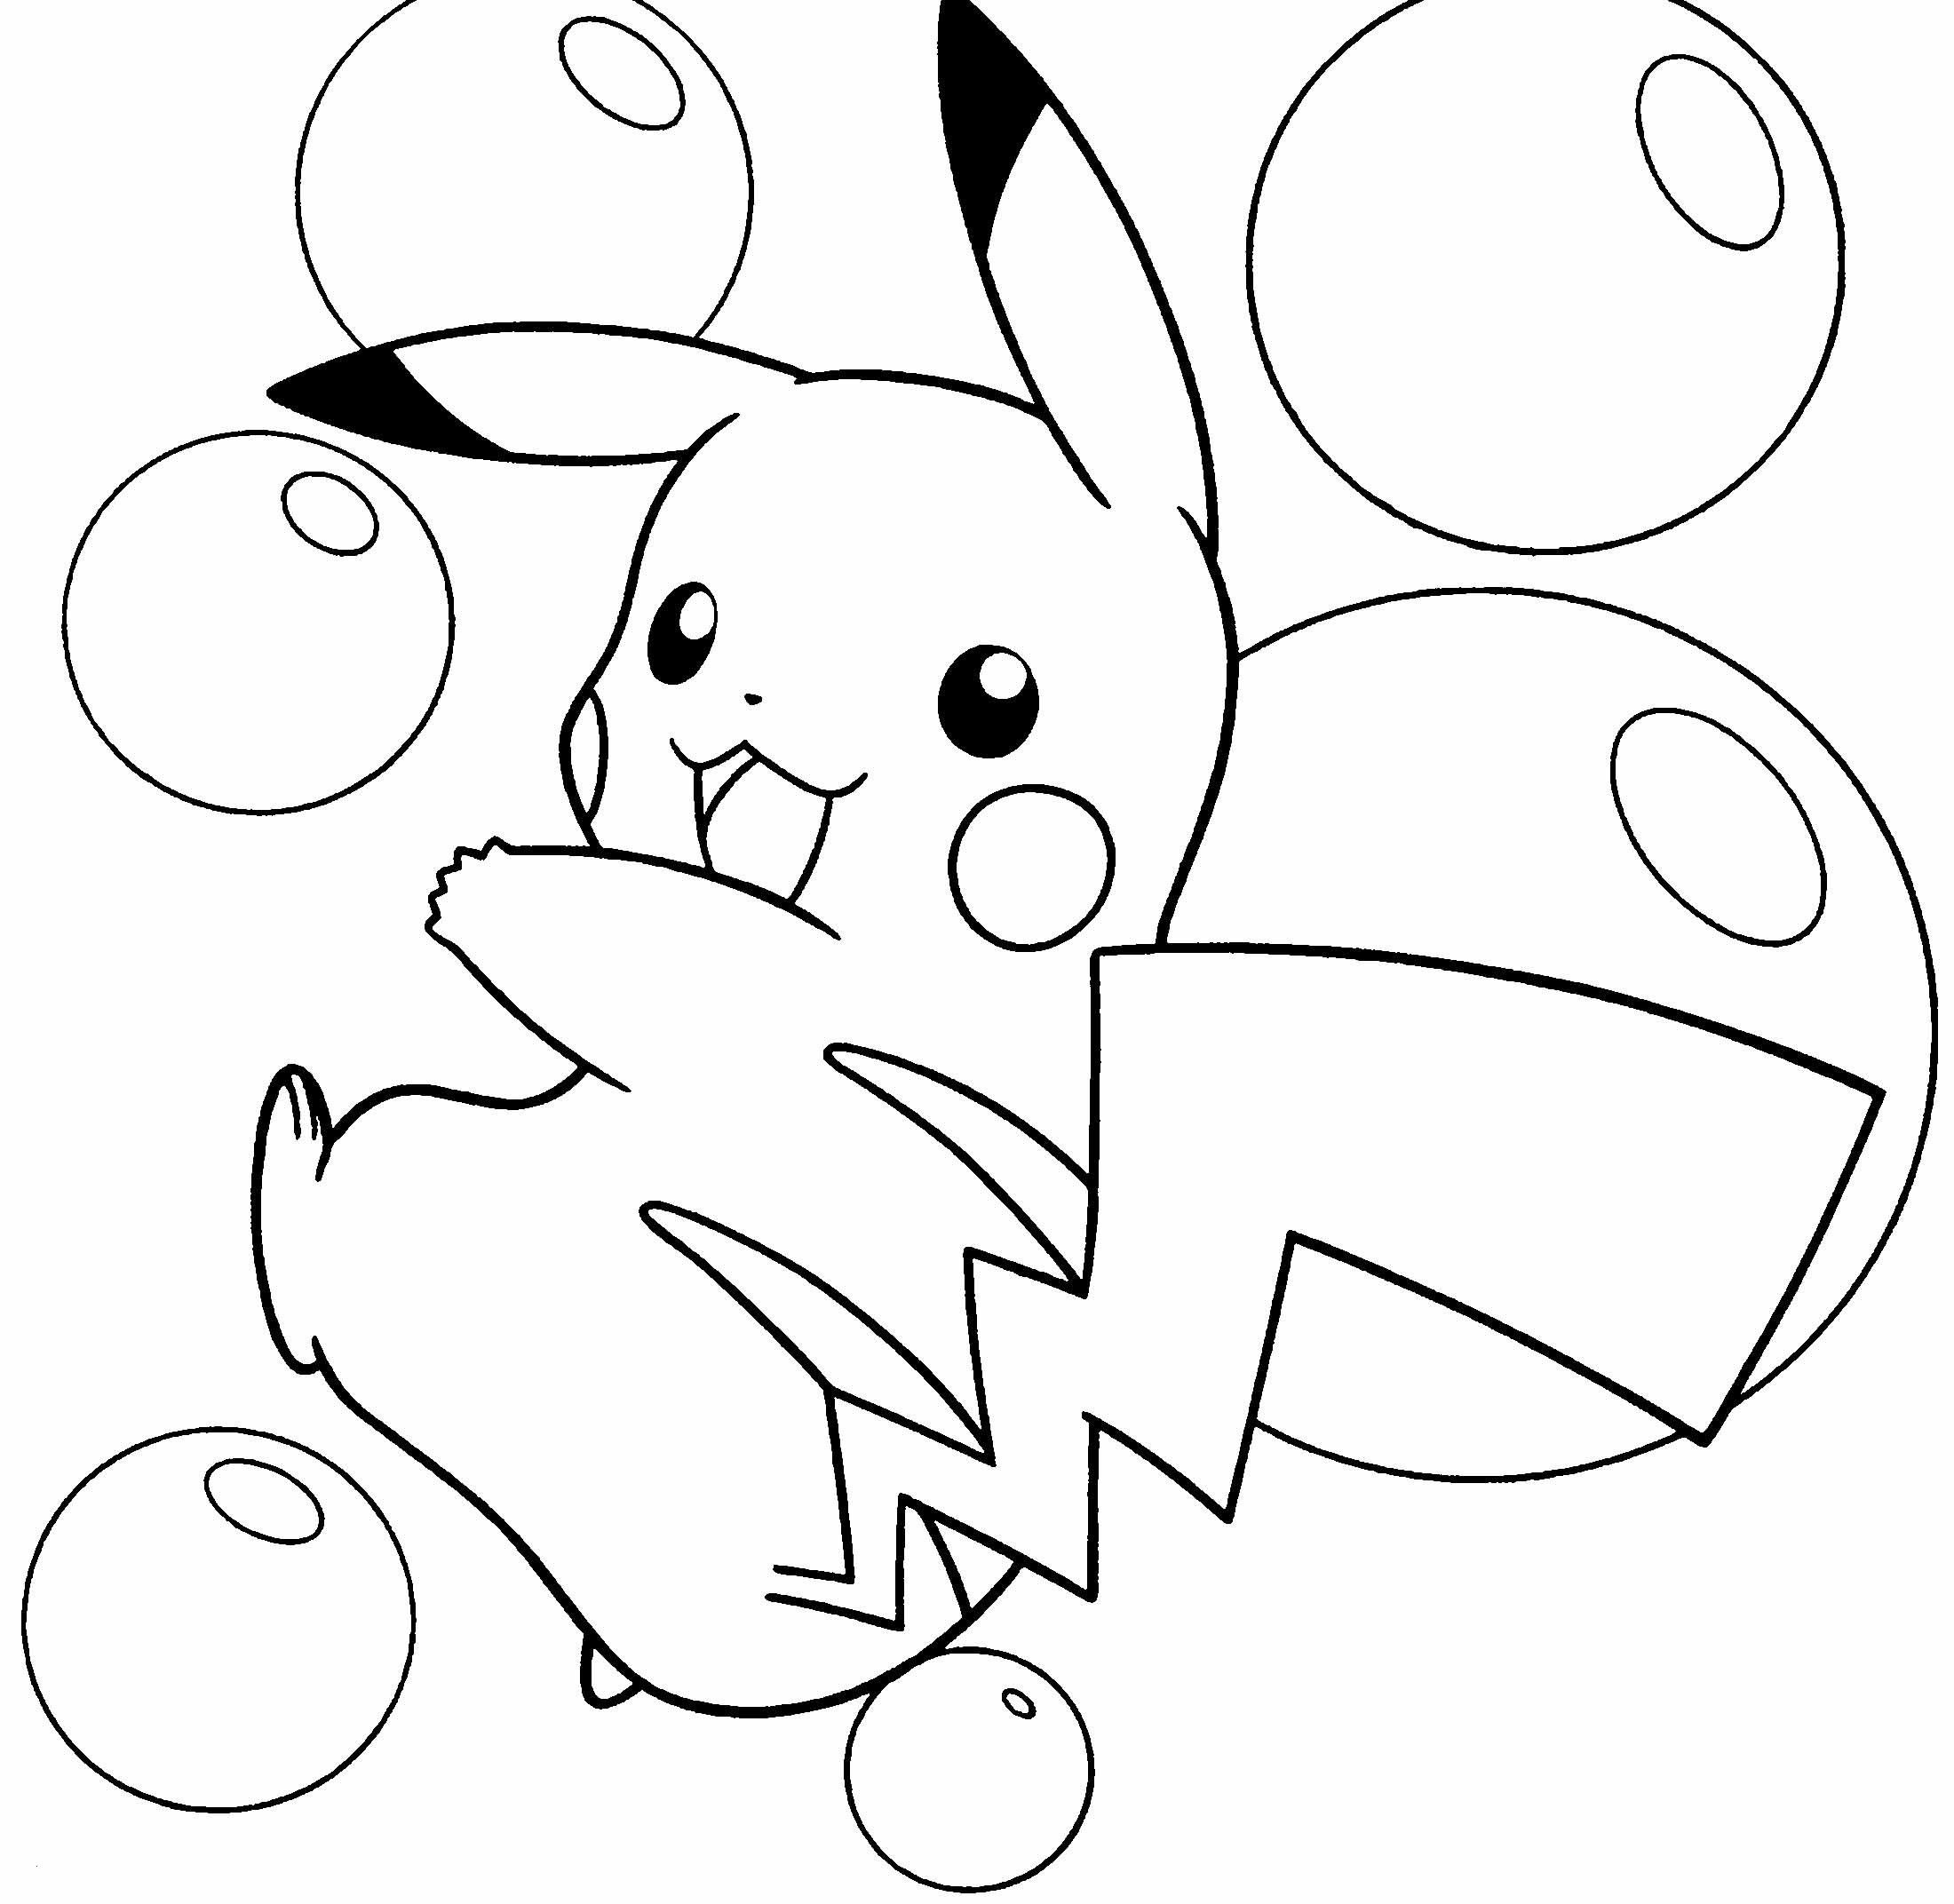 Pikachu Colouring Pages Online Through The Thousand Photos On Line Concerning Pikachu Colouring Pikachu Coloring Page Pokemon Coloring Pokemon Coloring Pages